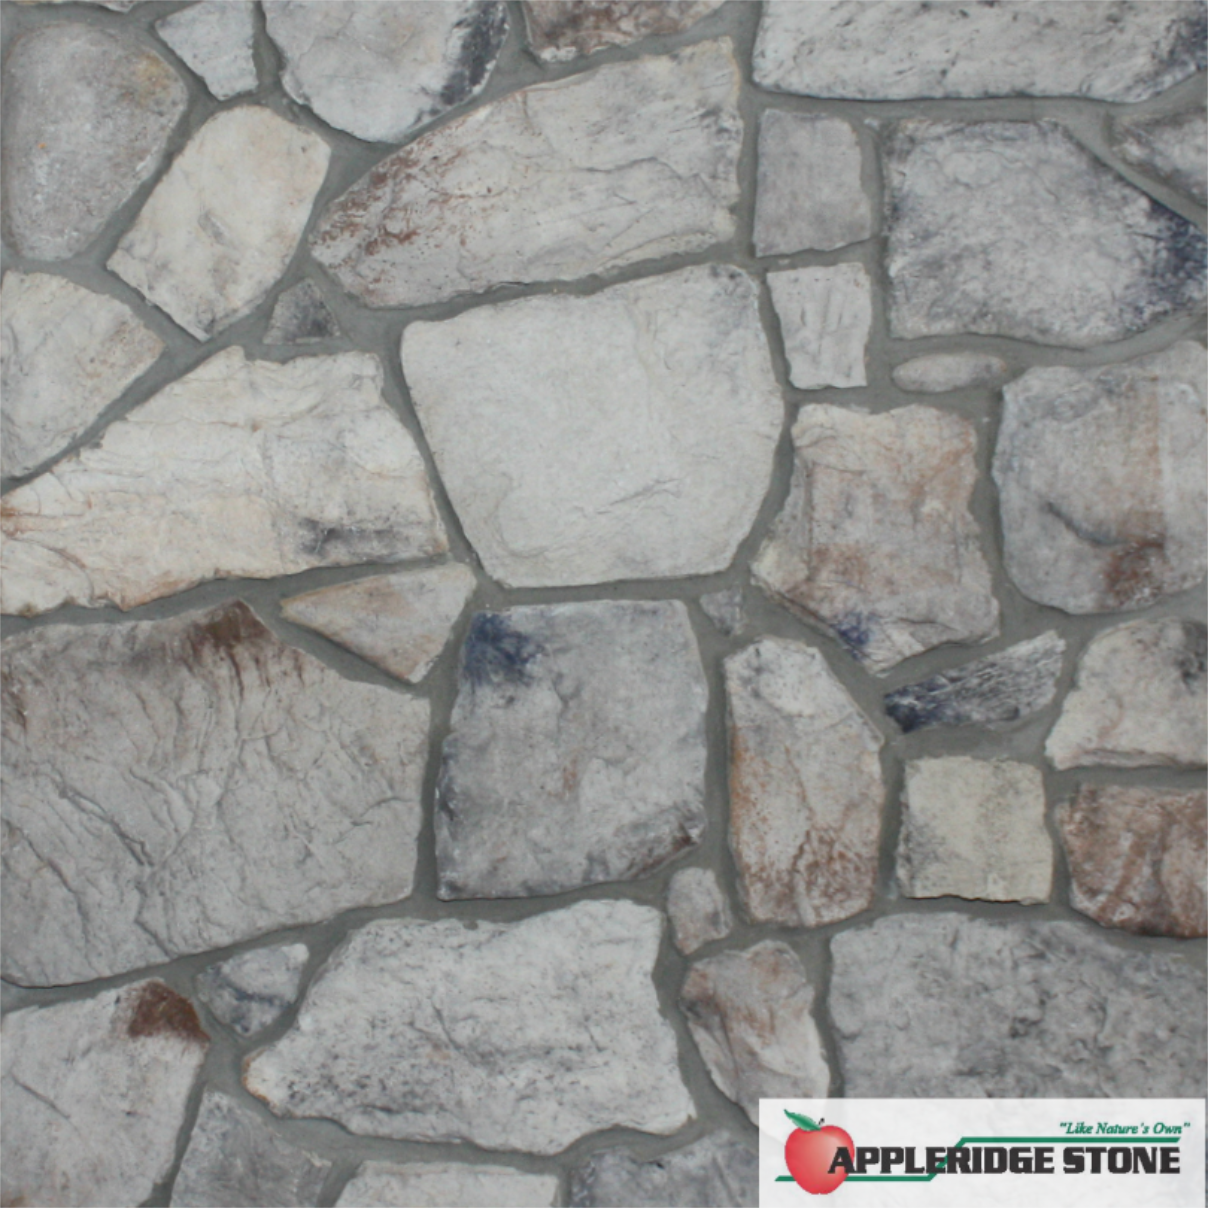 Appleridge Stone Stone Veneer Our Gray Color Blends Light Gray Medium Gray And Blue Gray With Small Amounts Of Mute Choco Stone Pattern Stone Veneer Color